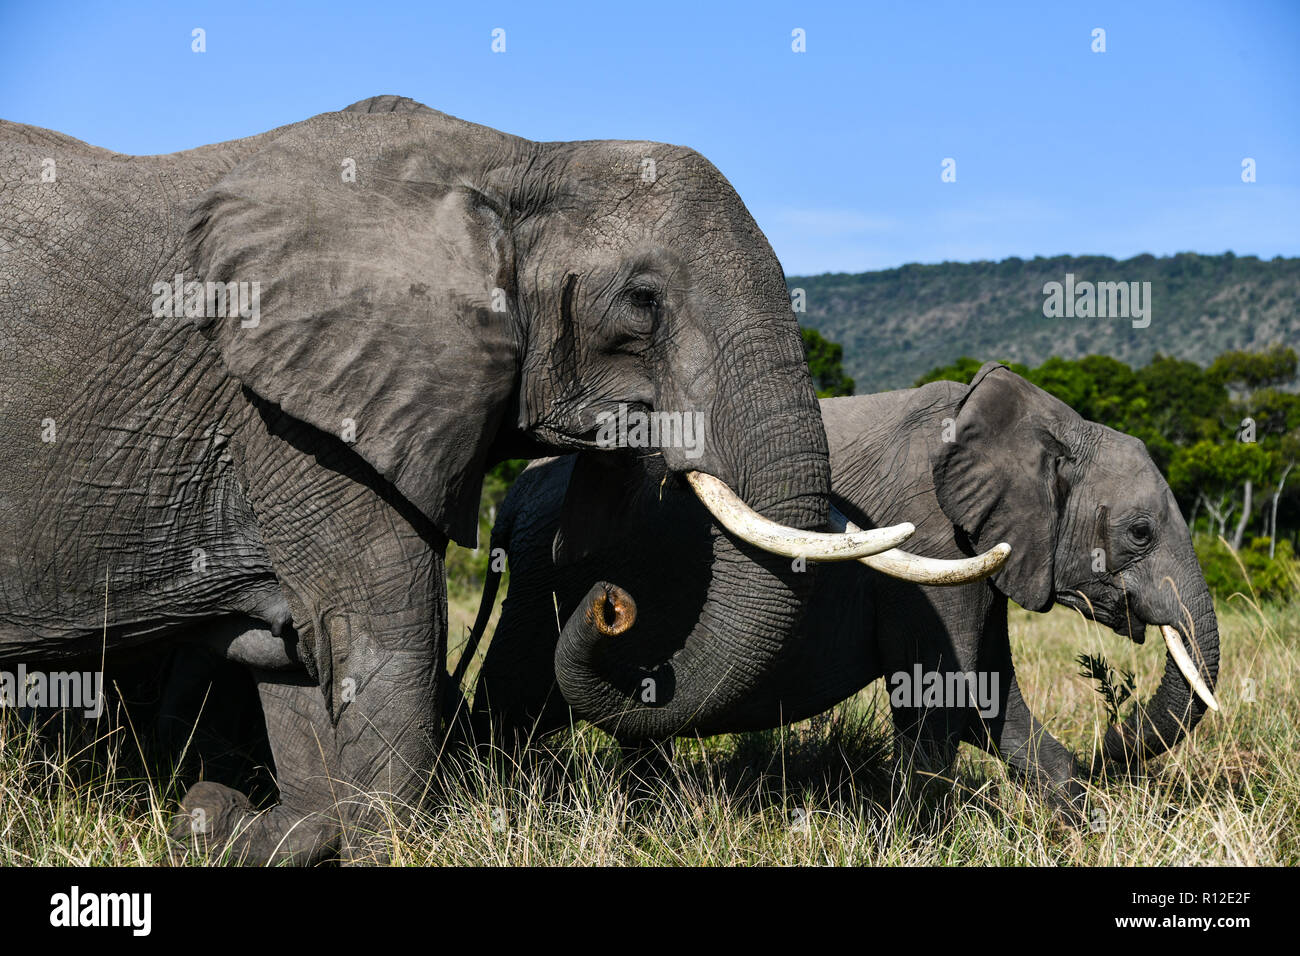 Elephants of Masai Mara, Kenya - Stock Image